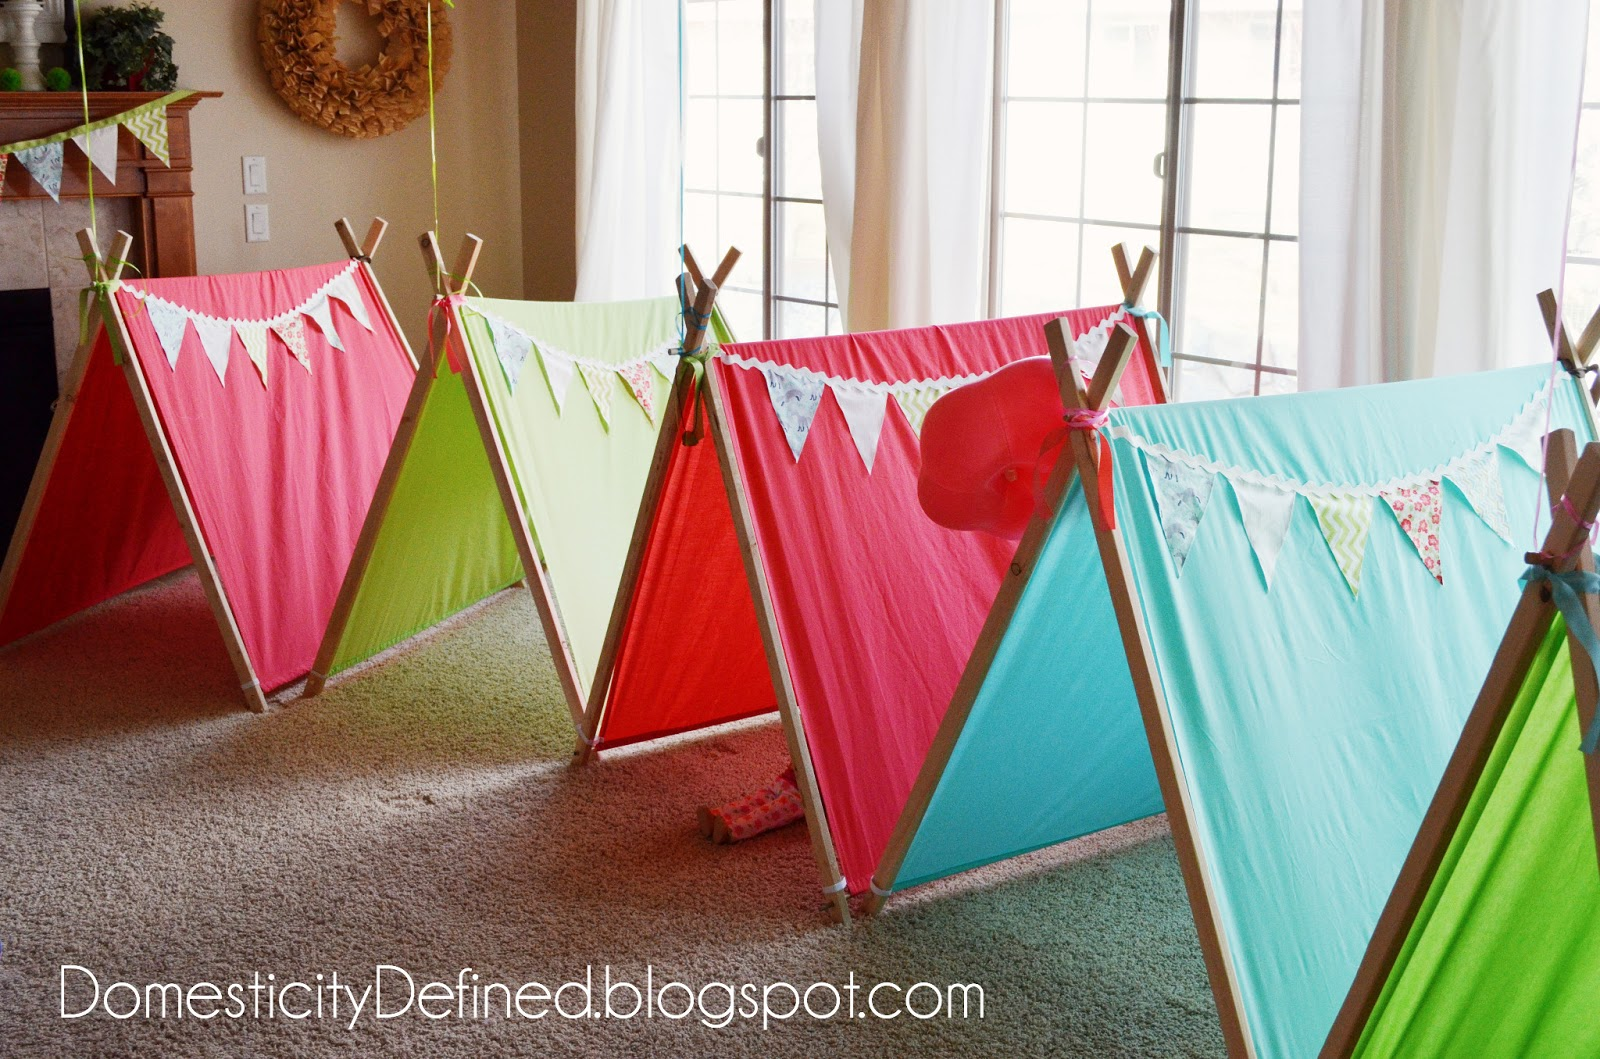 How To Make A Tent Domesticity Adorable Glamping Play Tents